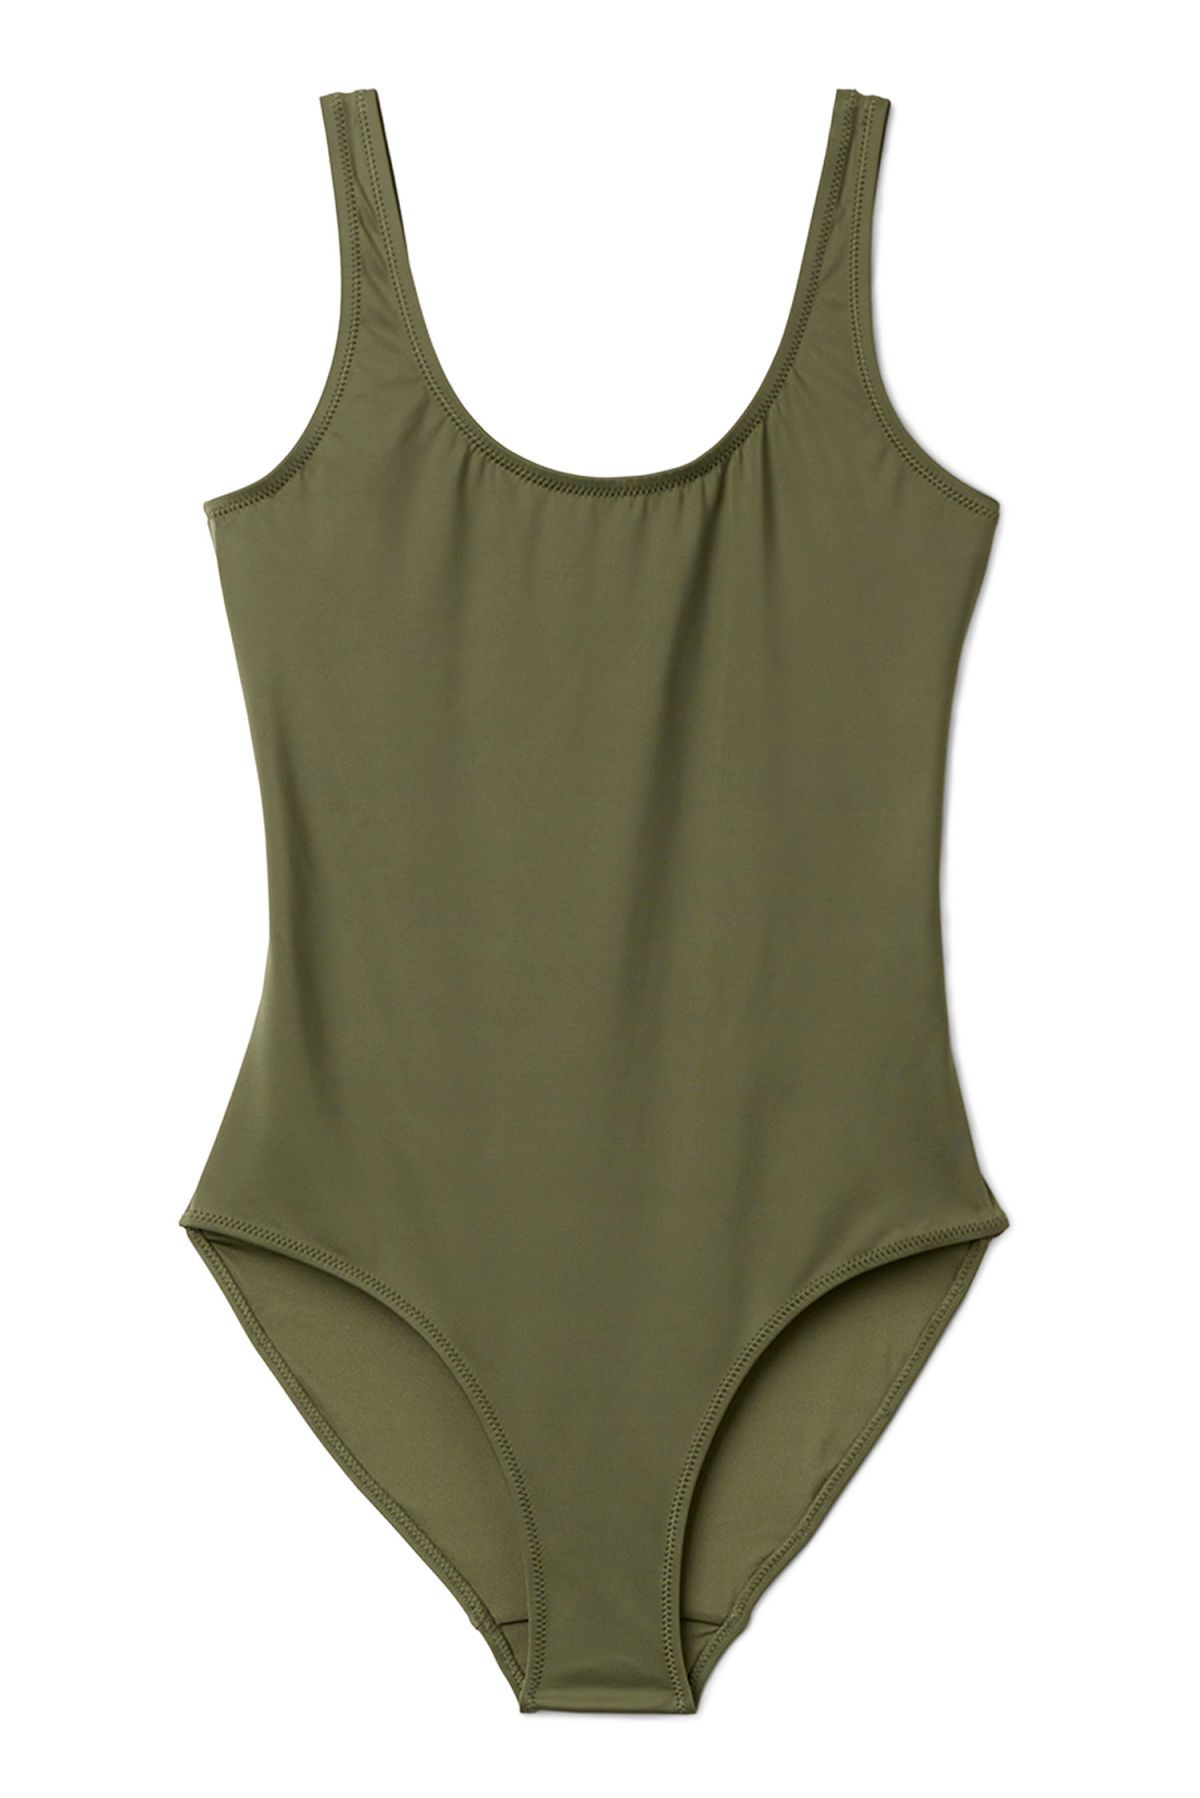 6fe3eac279b The Day Swimsuit is a simple sporty swimsuit with classic design details  such as a U-shaped neckline, wide straps and a round, open back. Made from  recycle